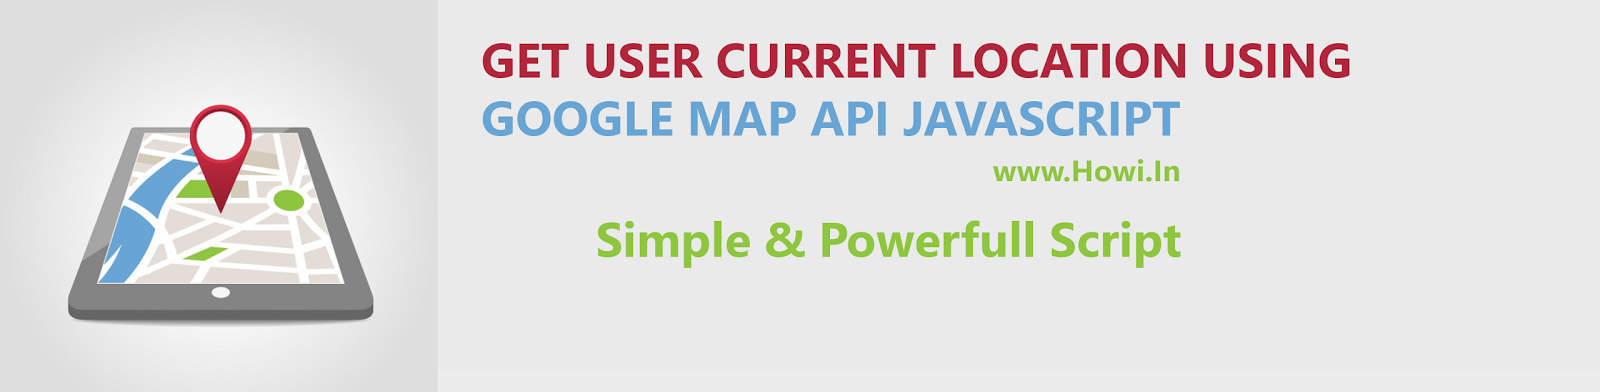 Get User Current Location Using Google Map API Script